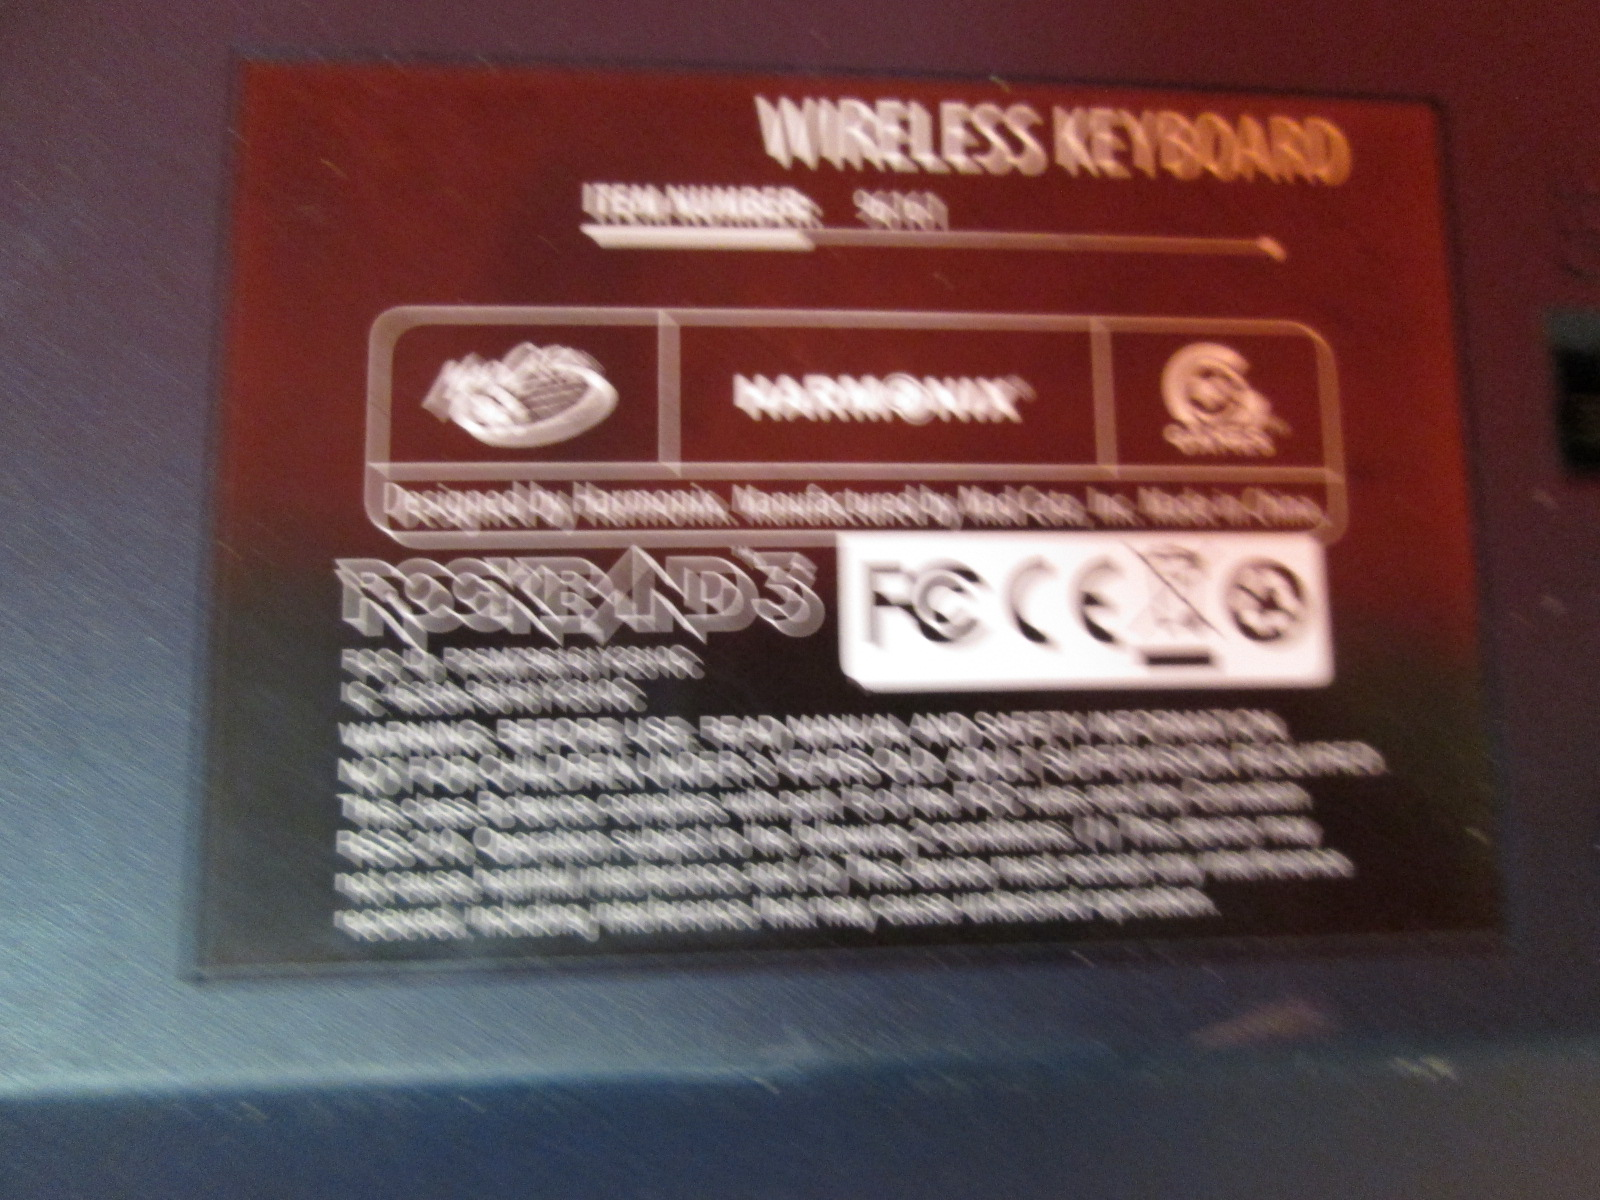 Image 1 of Mad Catz Rock Band 3 Wireless Keyboard For PlayStation 3 Incomplete